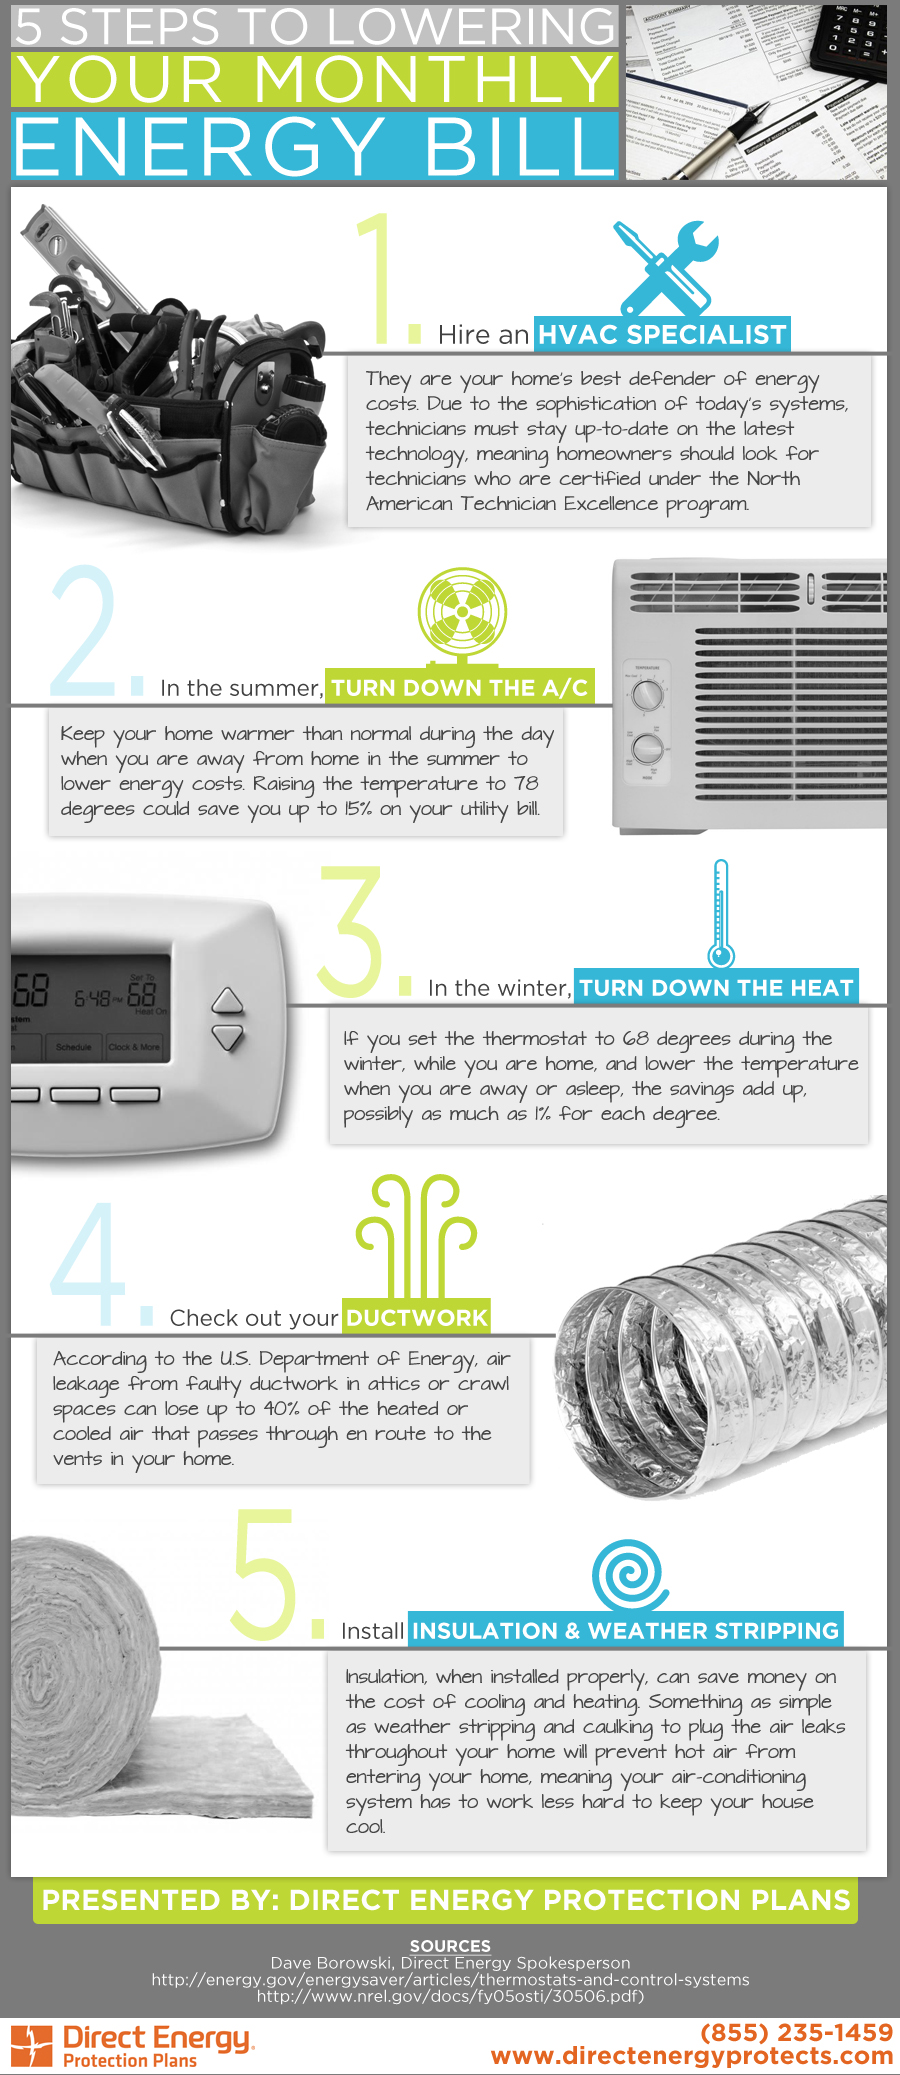 5 steps to lower your monthly energy bill from Direct Energy Protection Plan